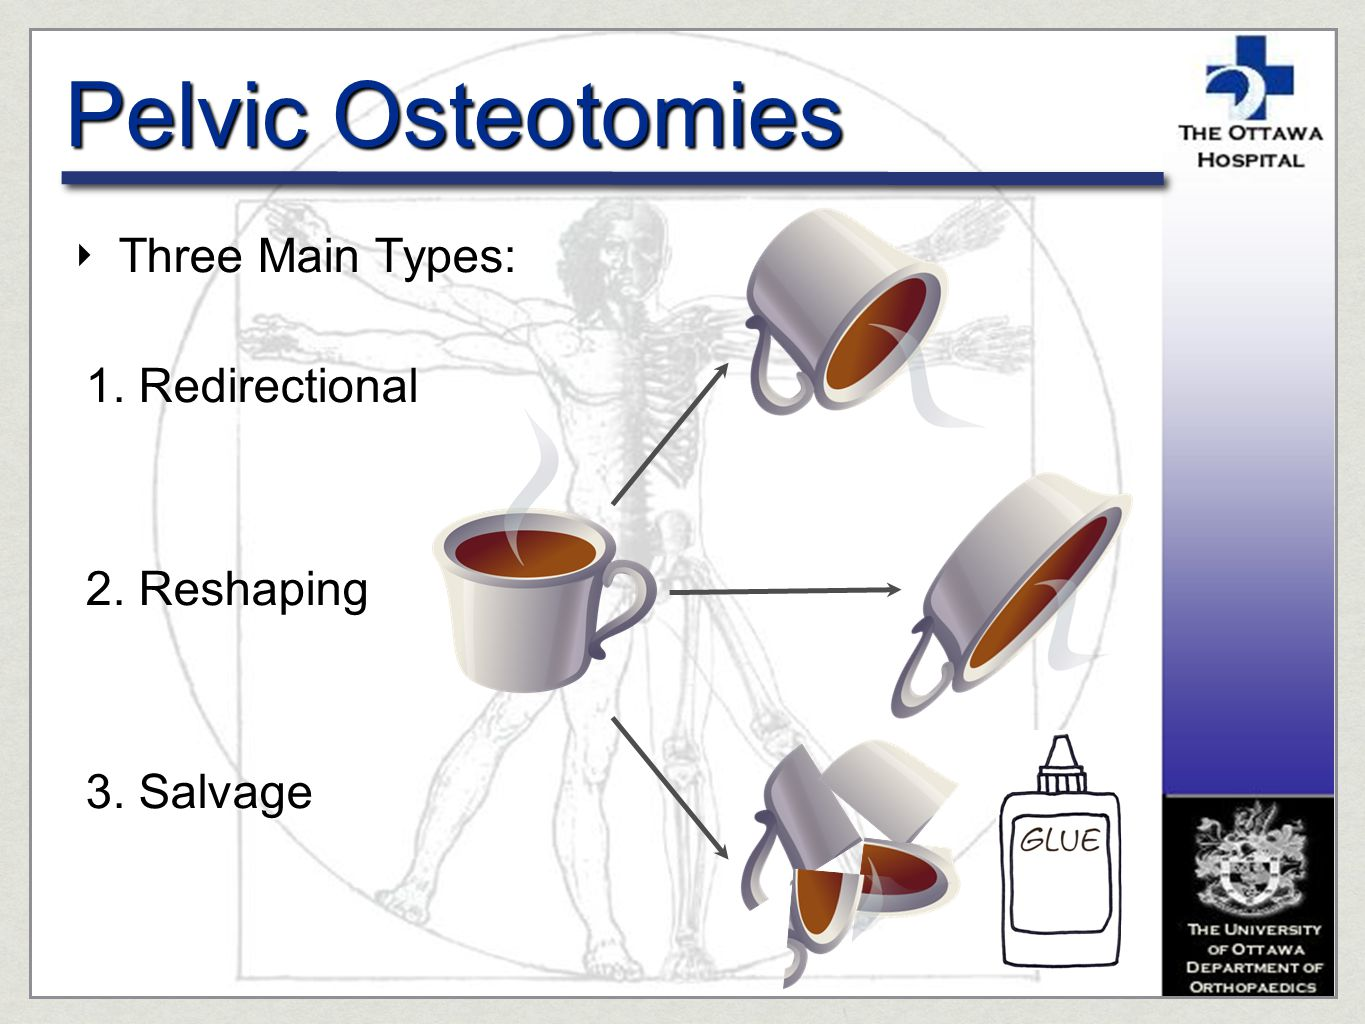 Pelvic Osteotomies Three Main Types: Redirectional Reshaping Salvage